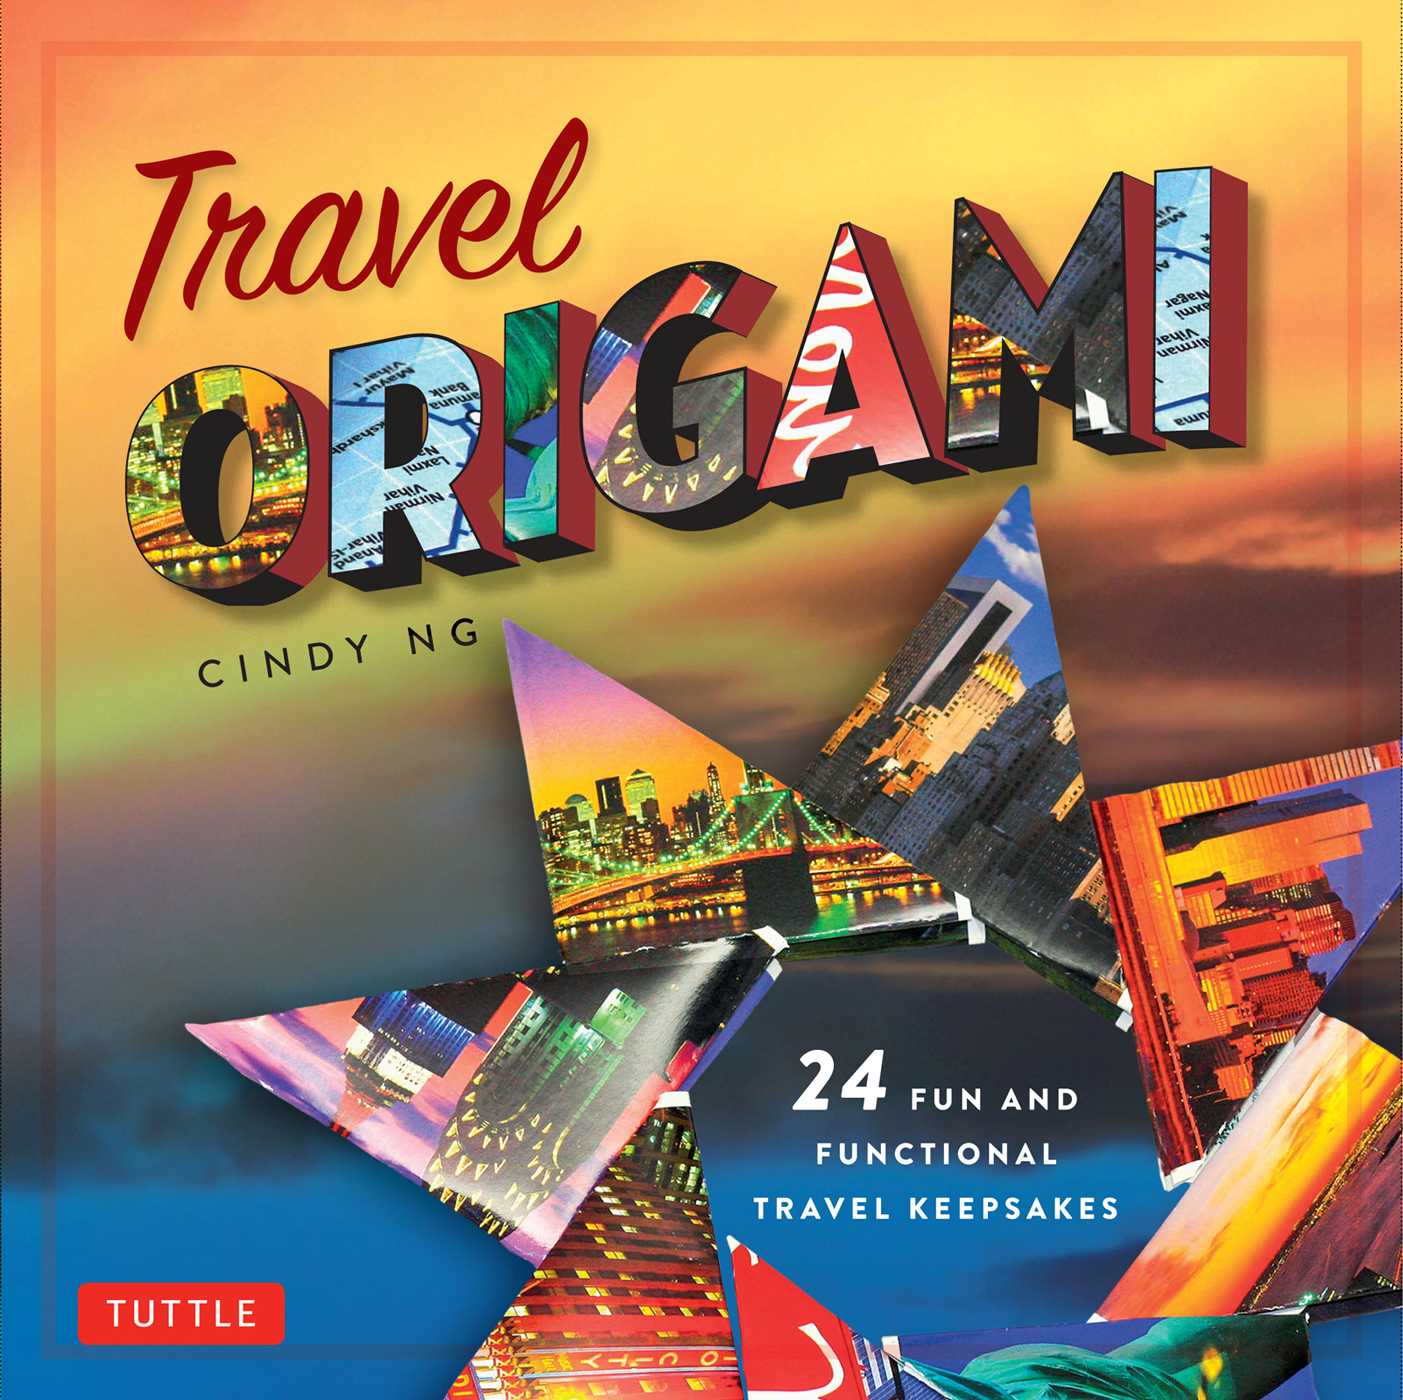 Travel-origami-9784805312063_hr